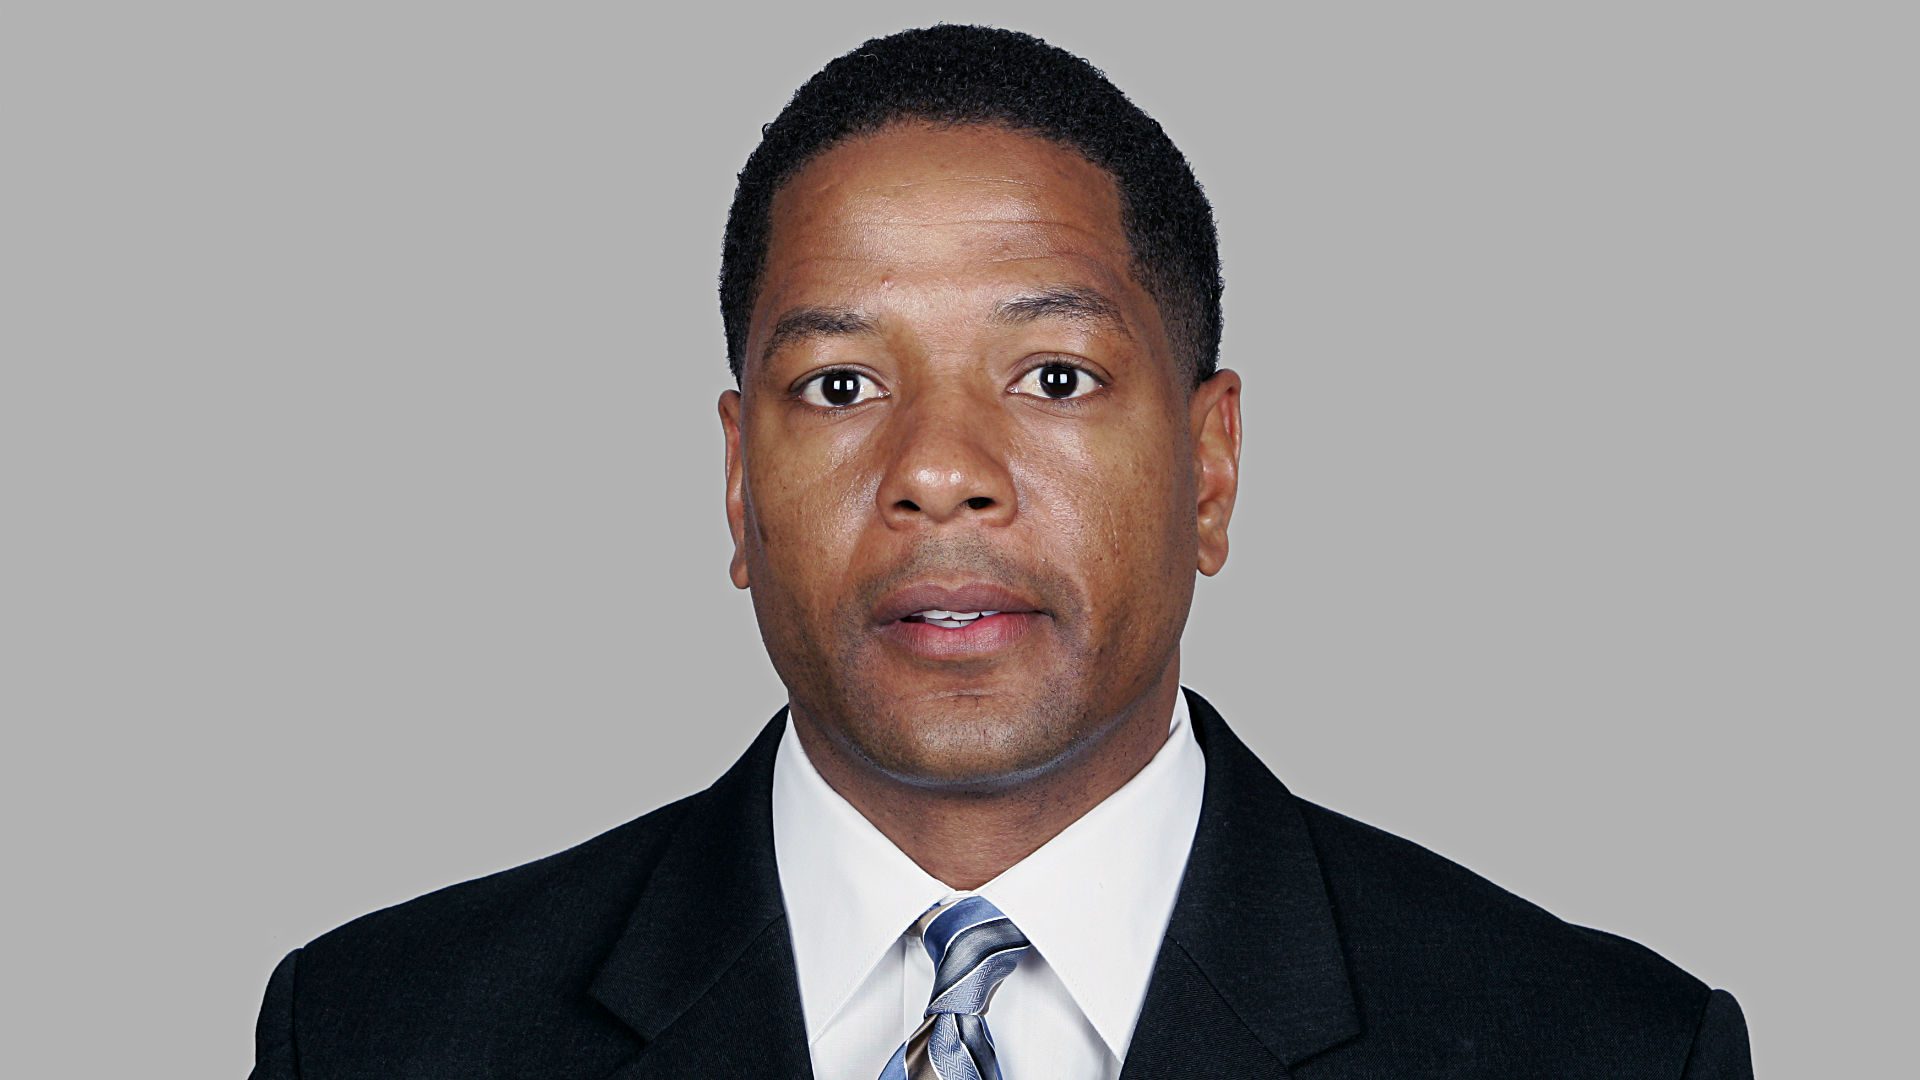 Arizona Cardinals hire Steve Wilks as new head coach